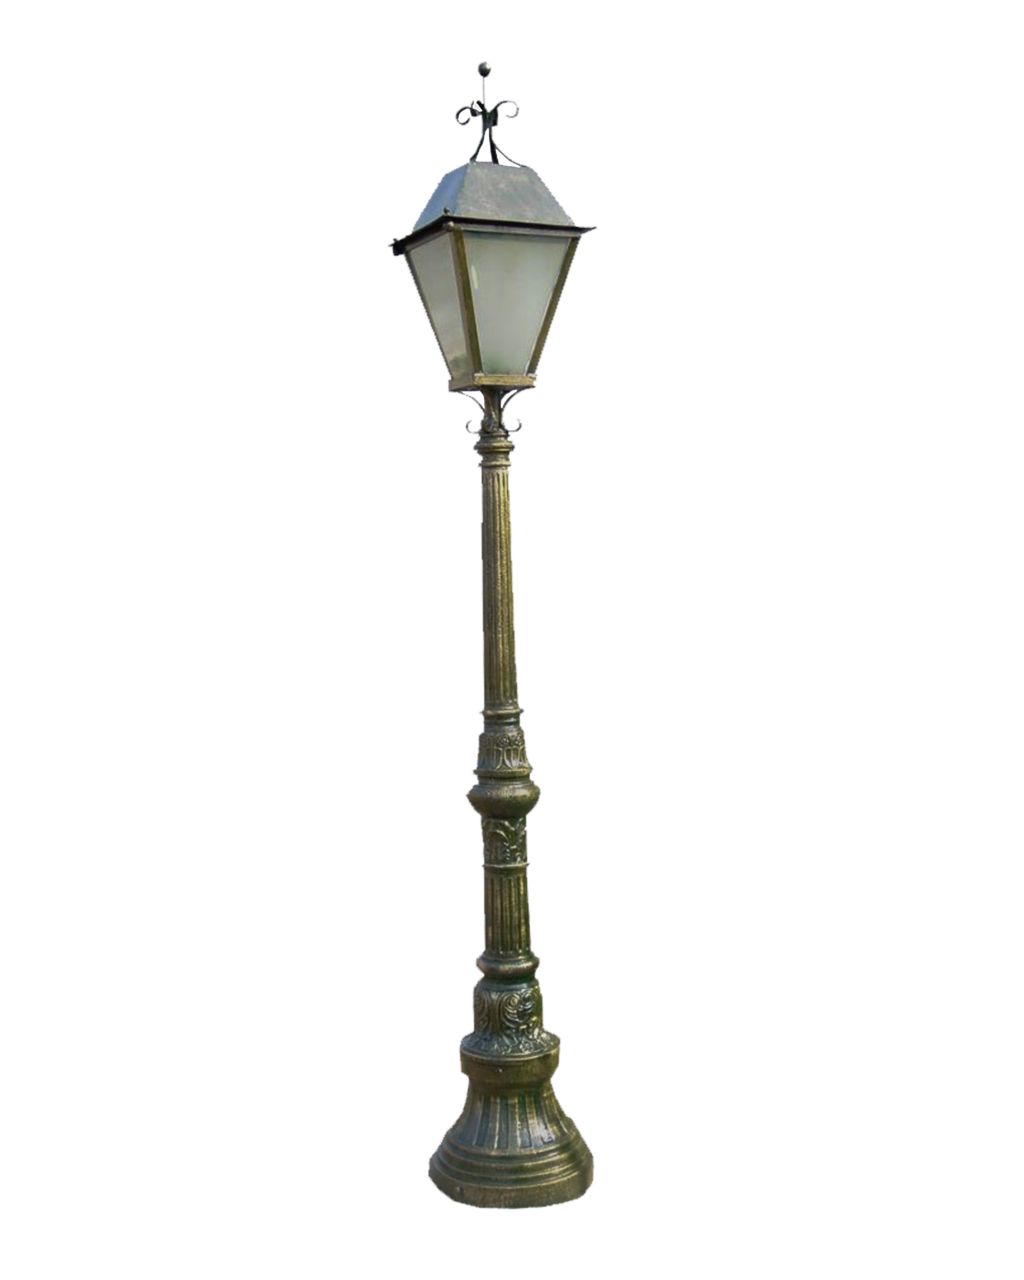 Png Lamp 22 By Moonglowlilly On Deviantart Lamp Post Lights Old Lamp Shades Bedside Lamps Crystal